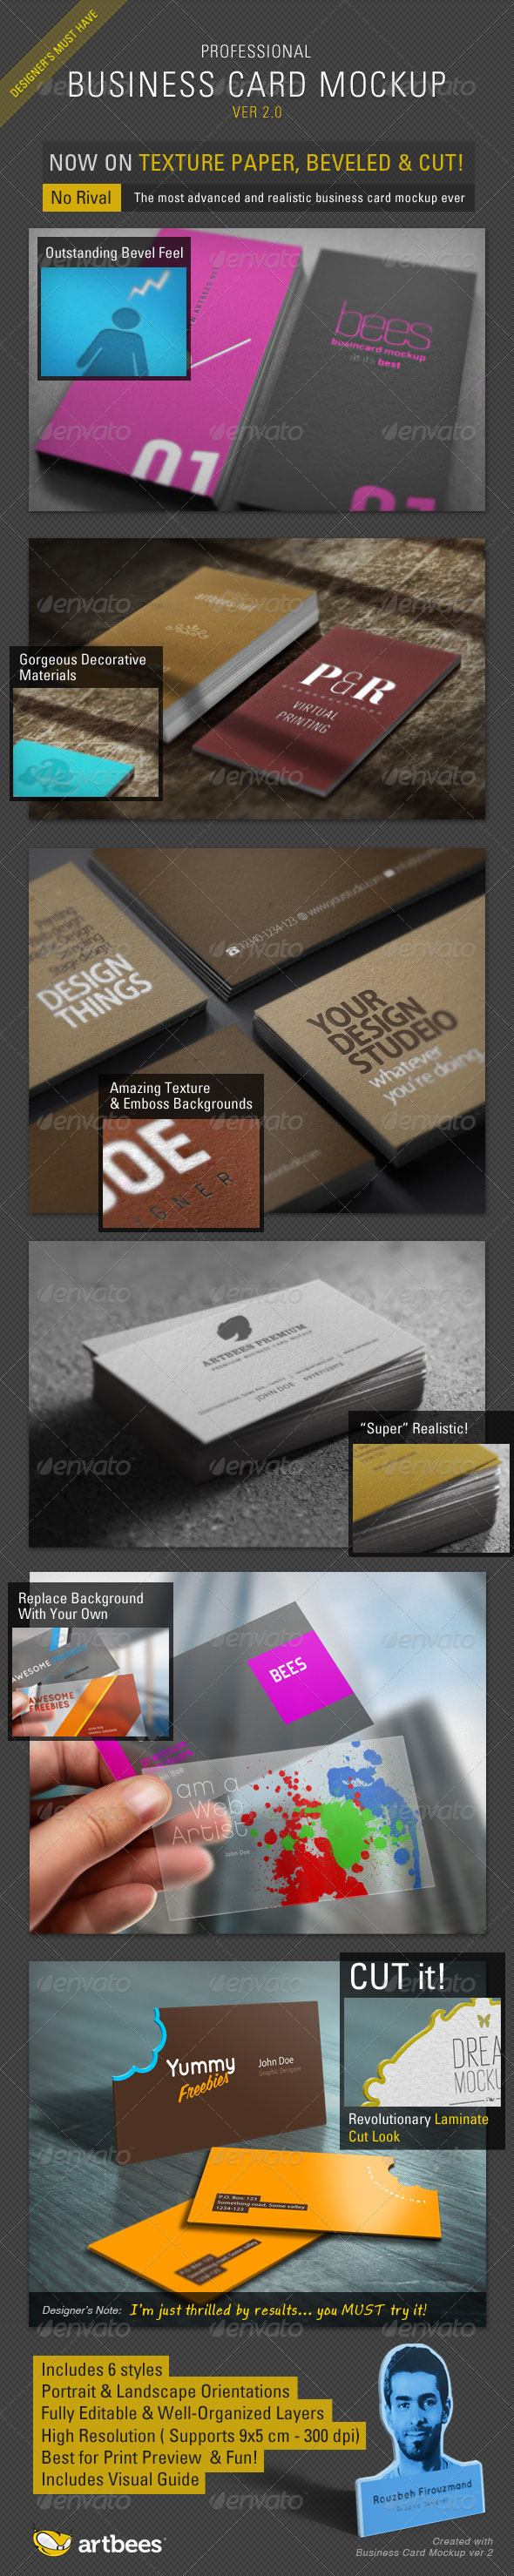 GraphicRiver Business Card Mockup Pro ver 2.0 1321686